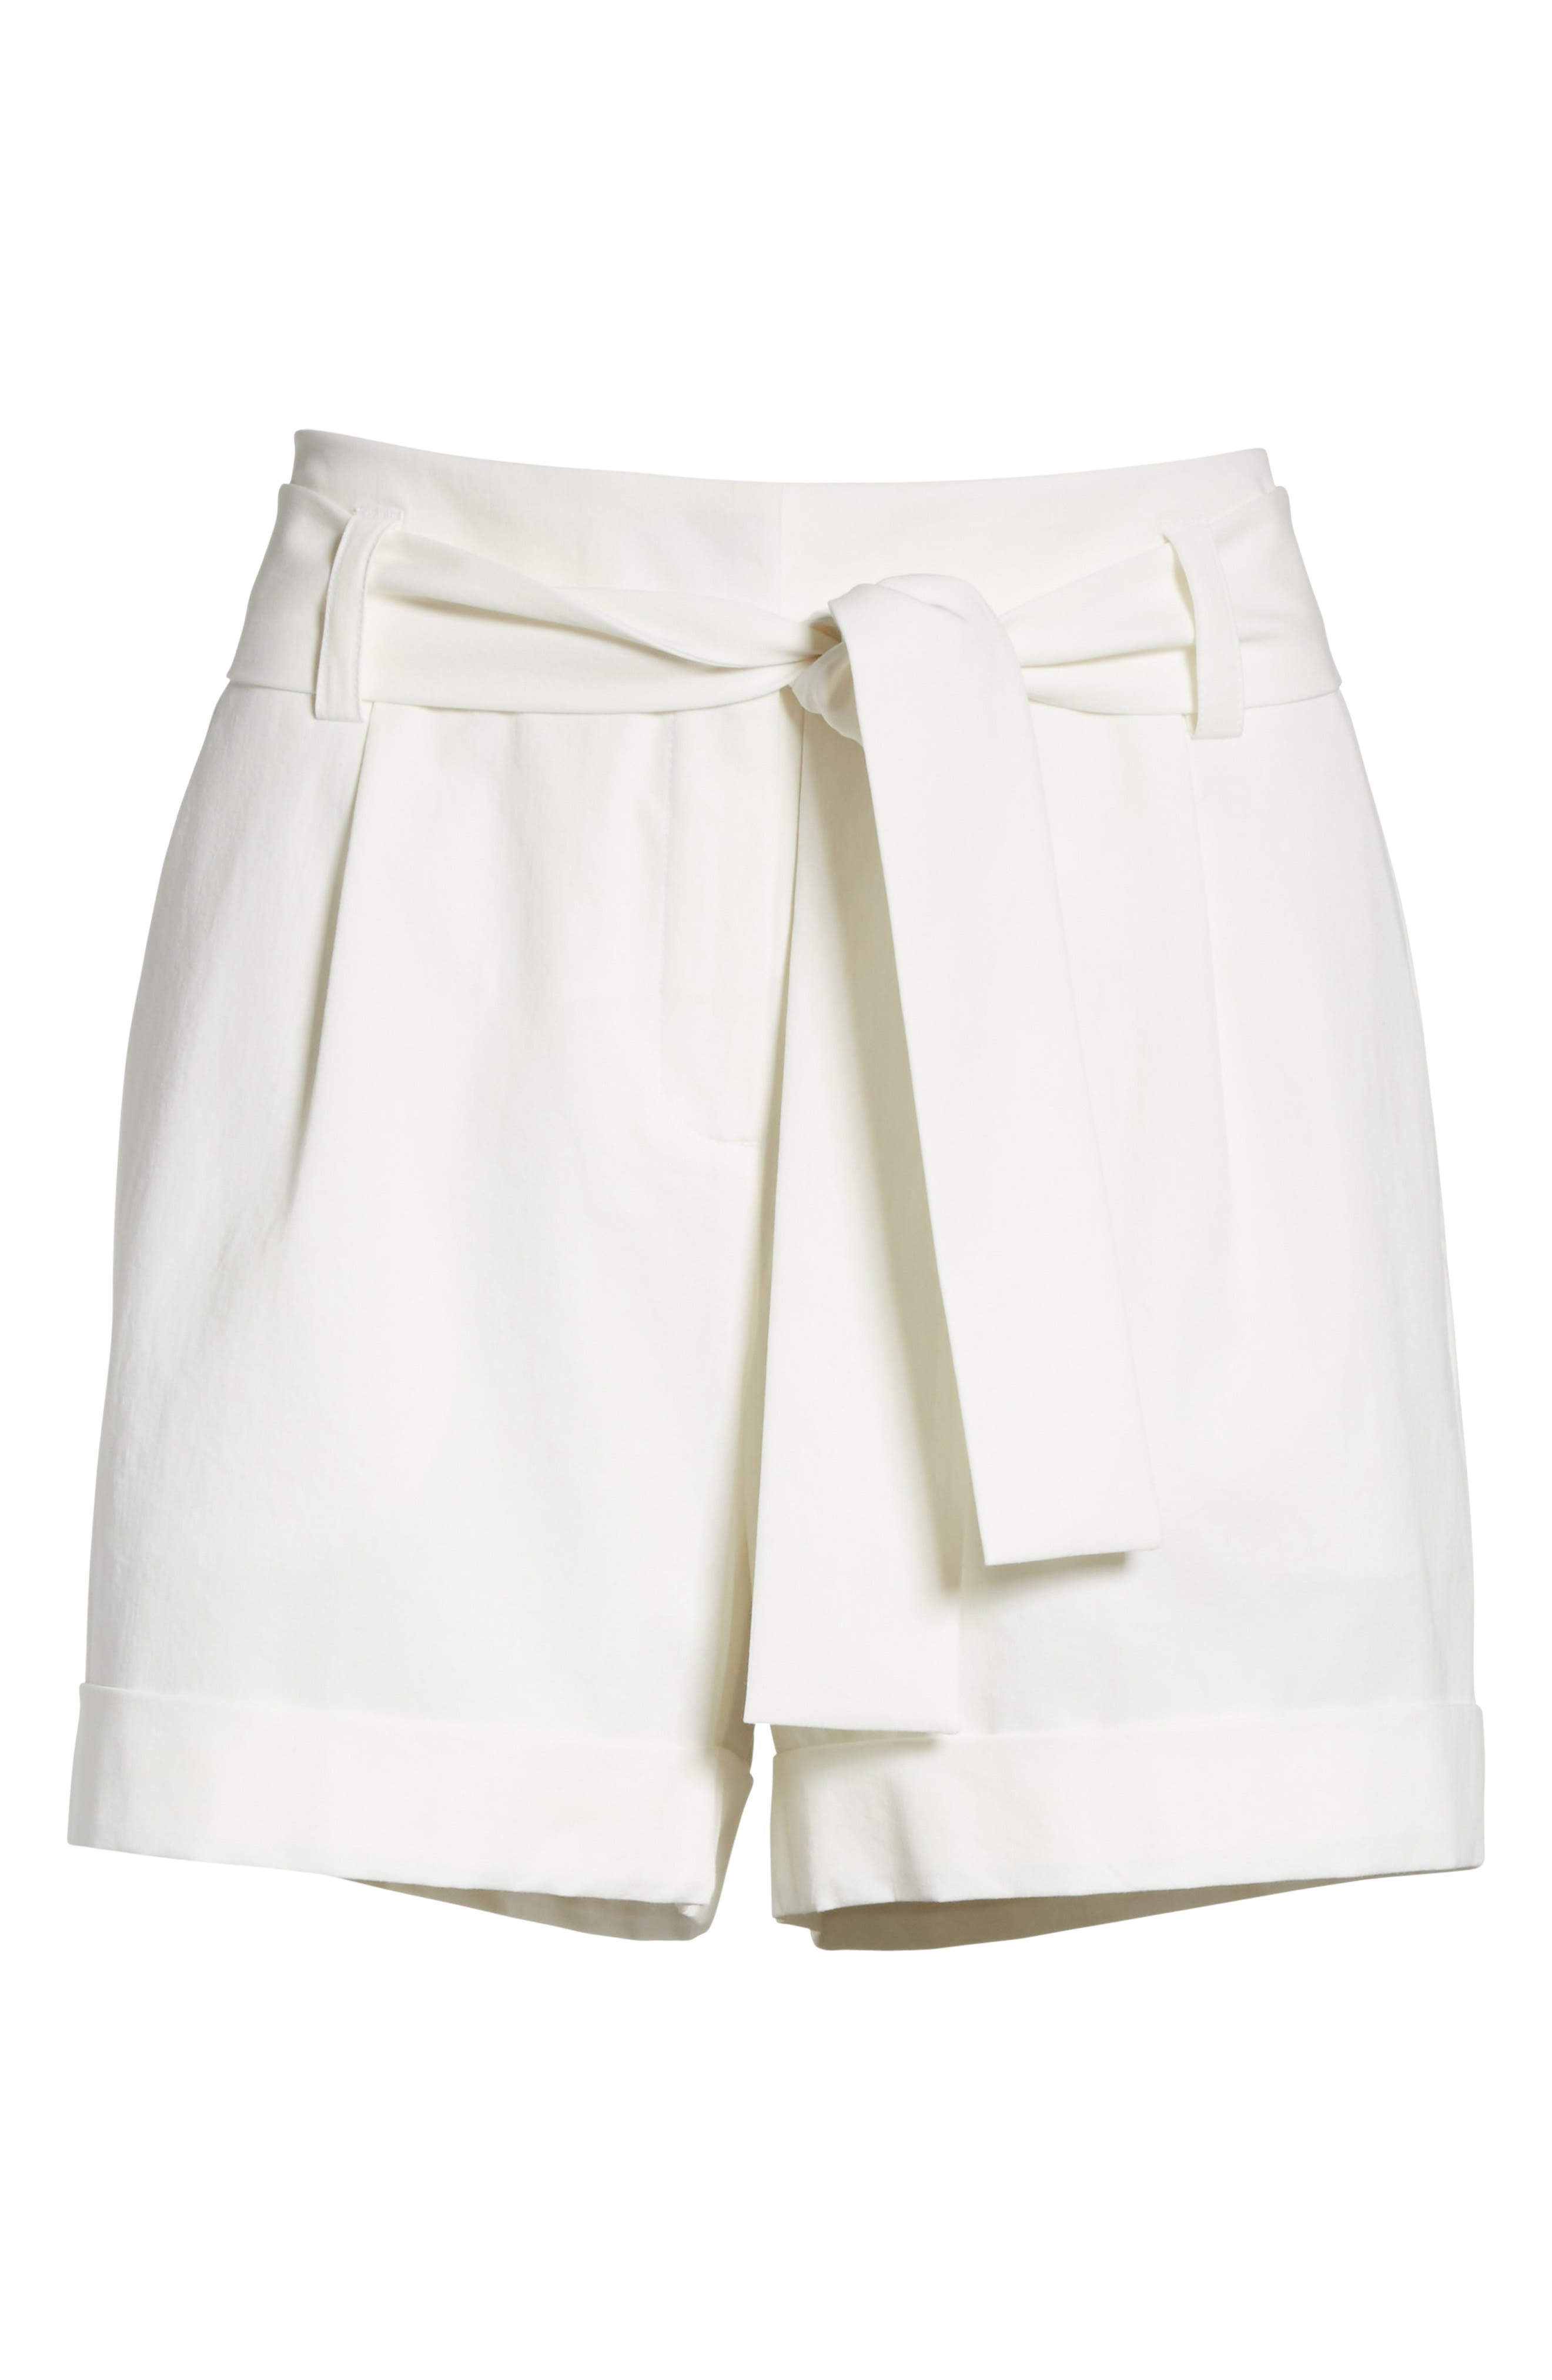 Greenpoint City Shorts,                             Alternate thumbnail 7, color,                             WHITE